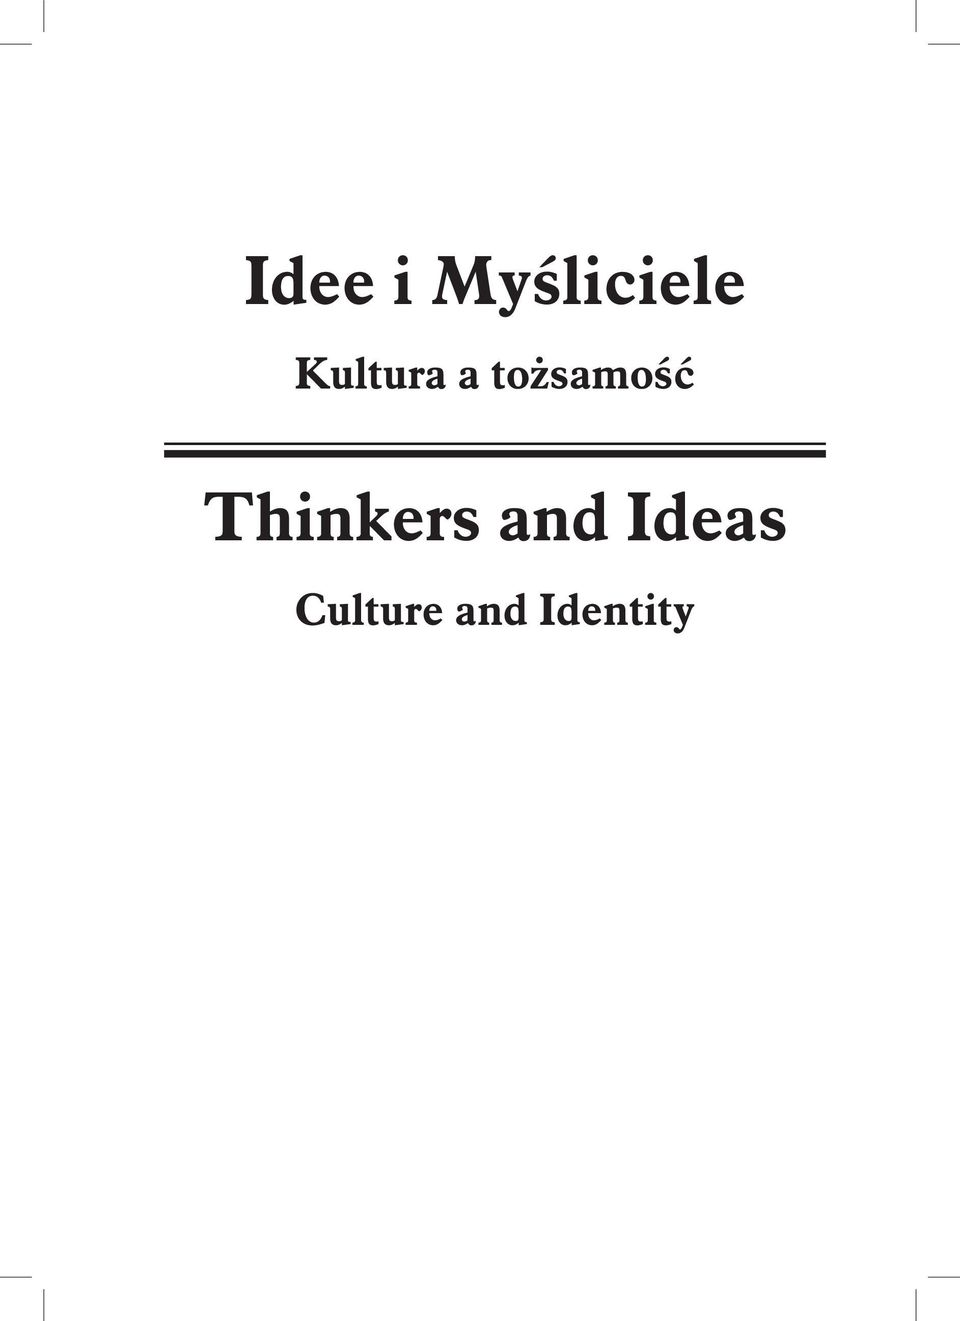 Thinkers and Ideas